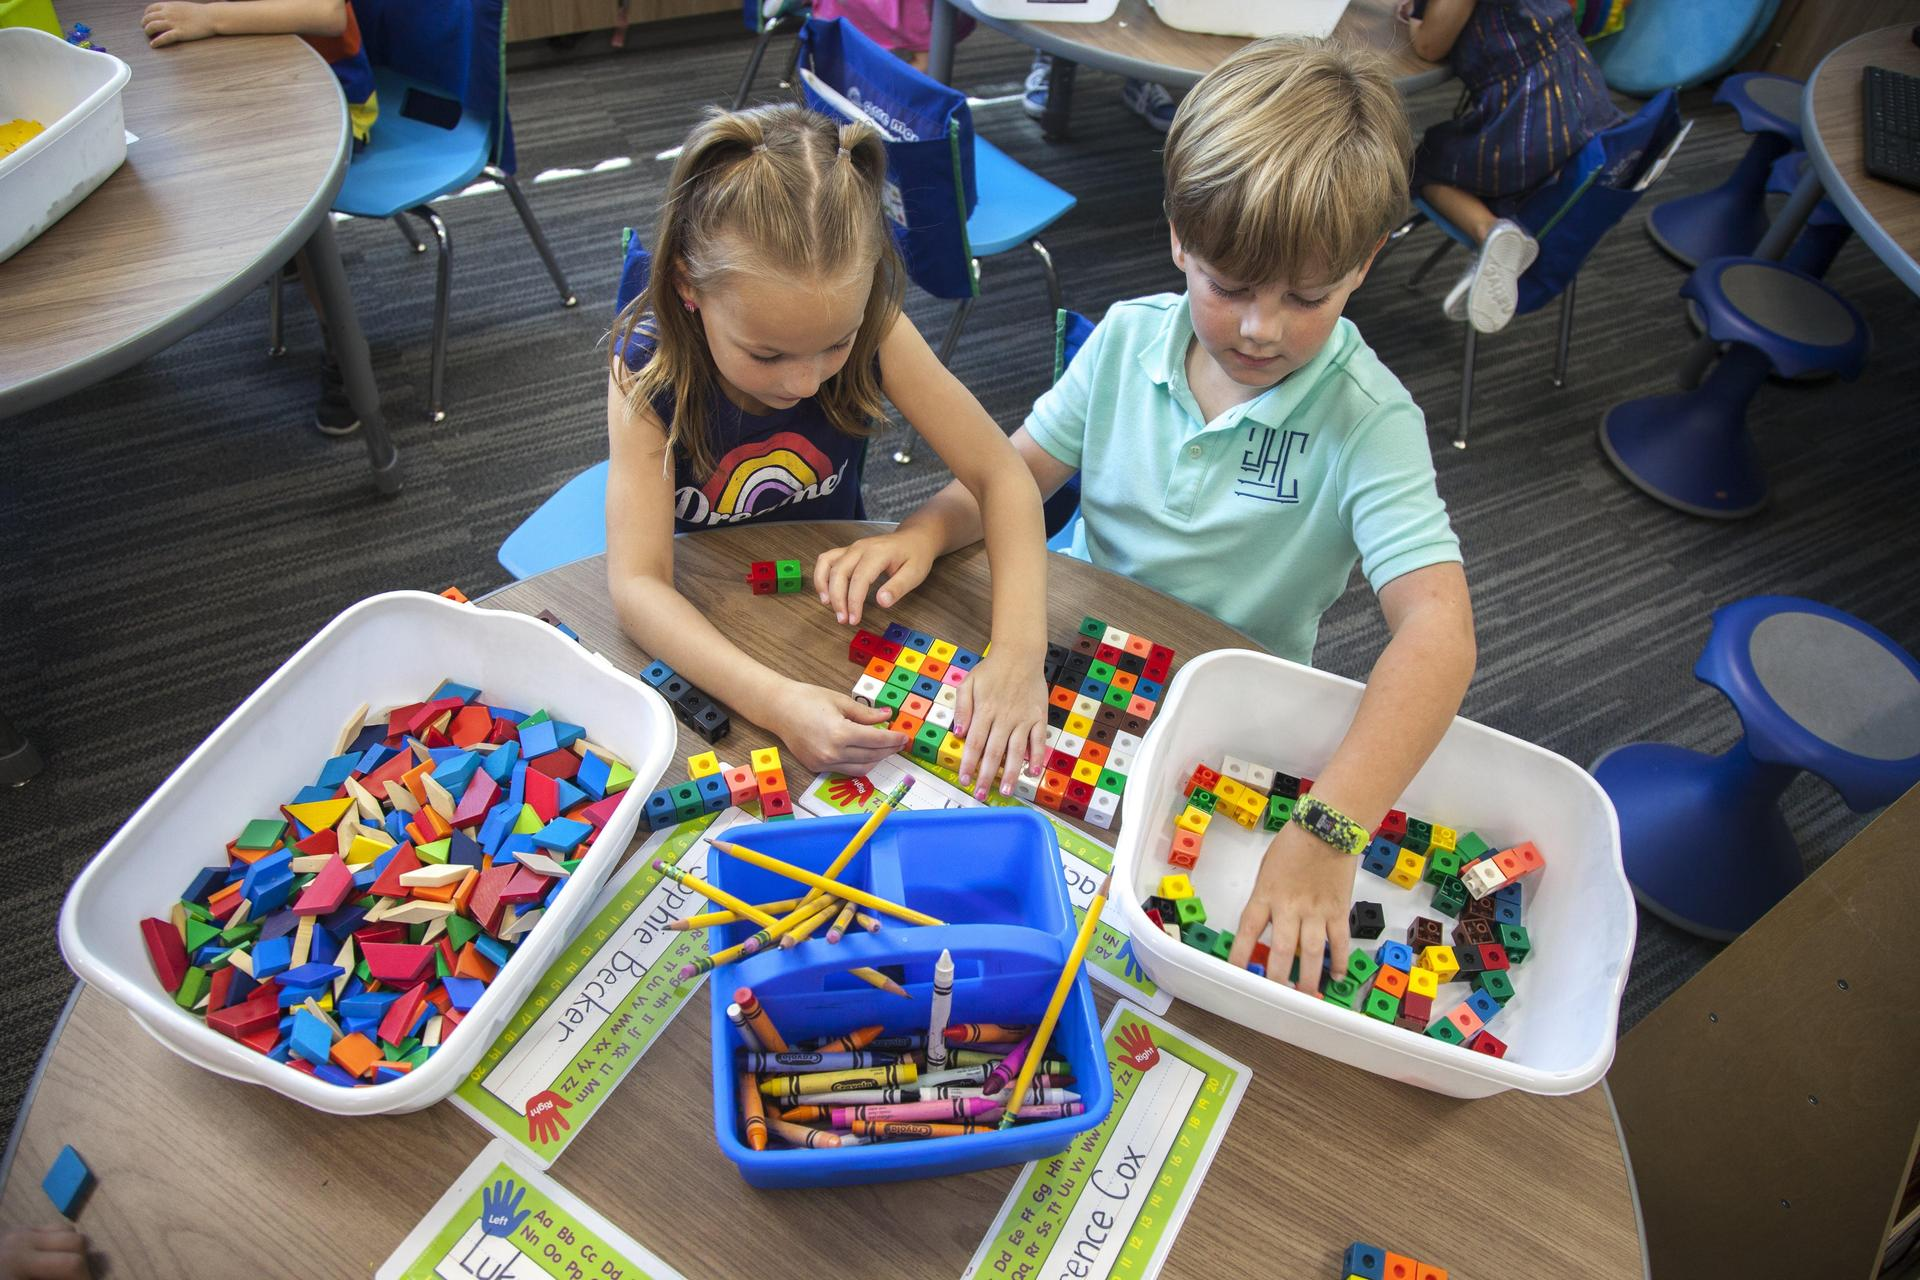 Students playing with lego blocks.